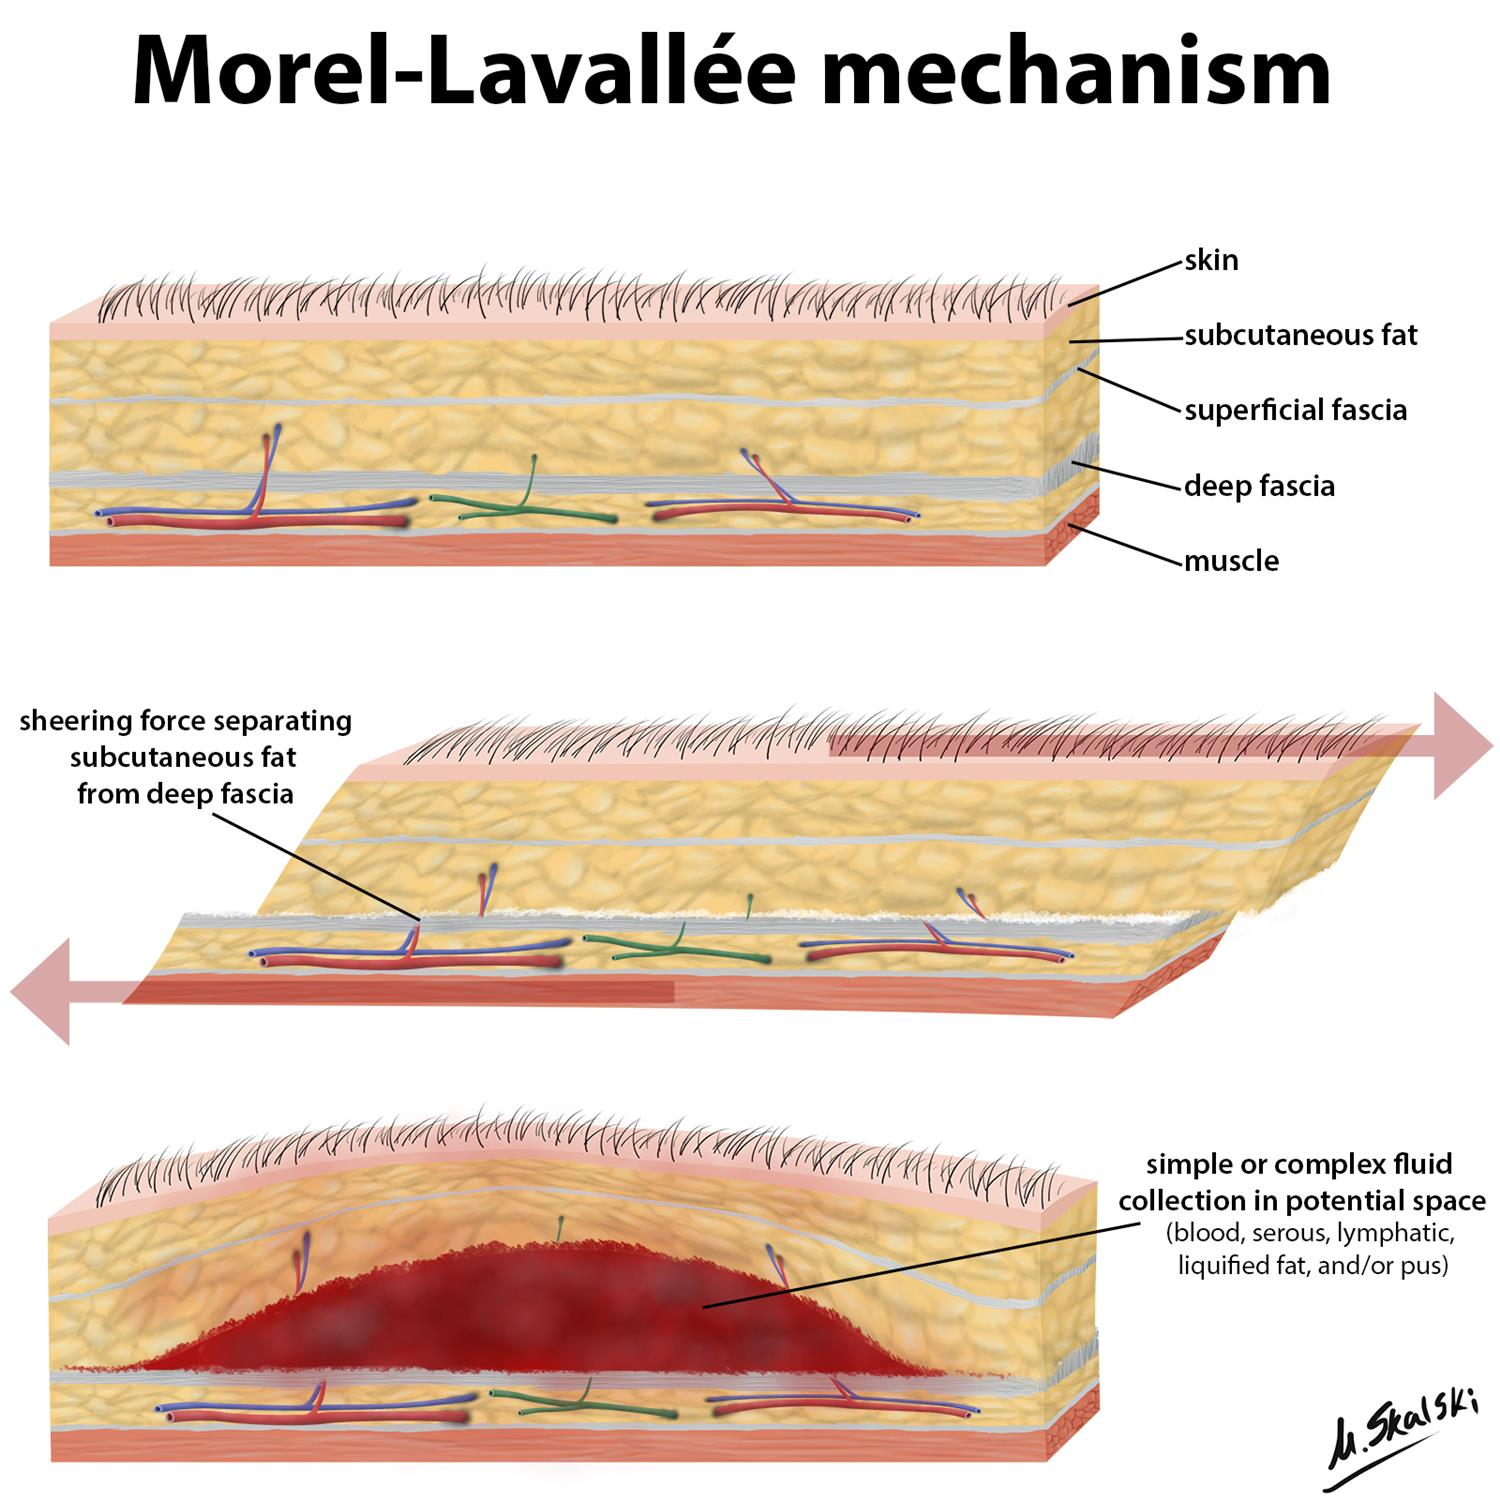 https://upload.orthobullets.com/topic/422820/images/morel-lavallee-anatomy-illustration.jpg